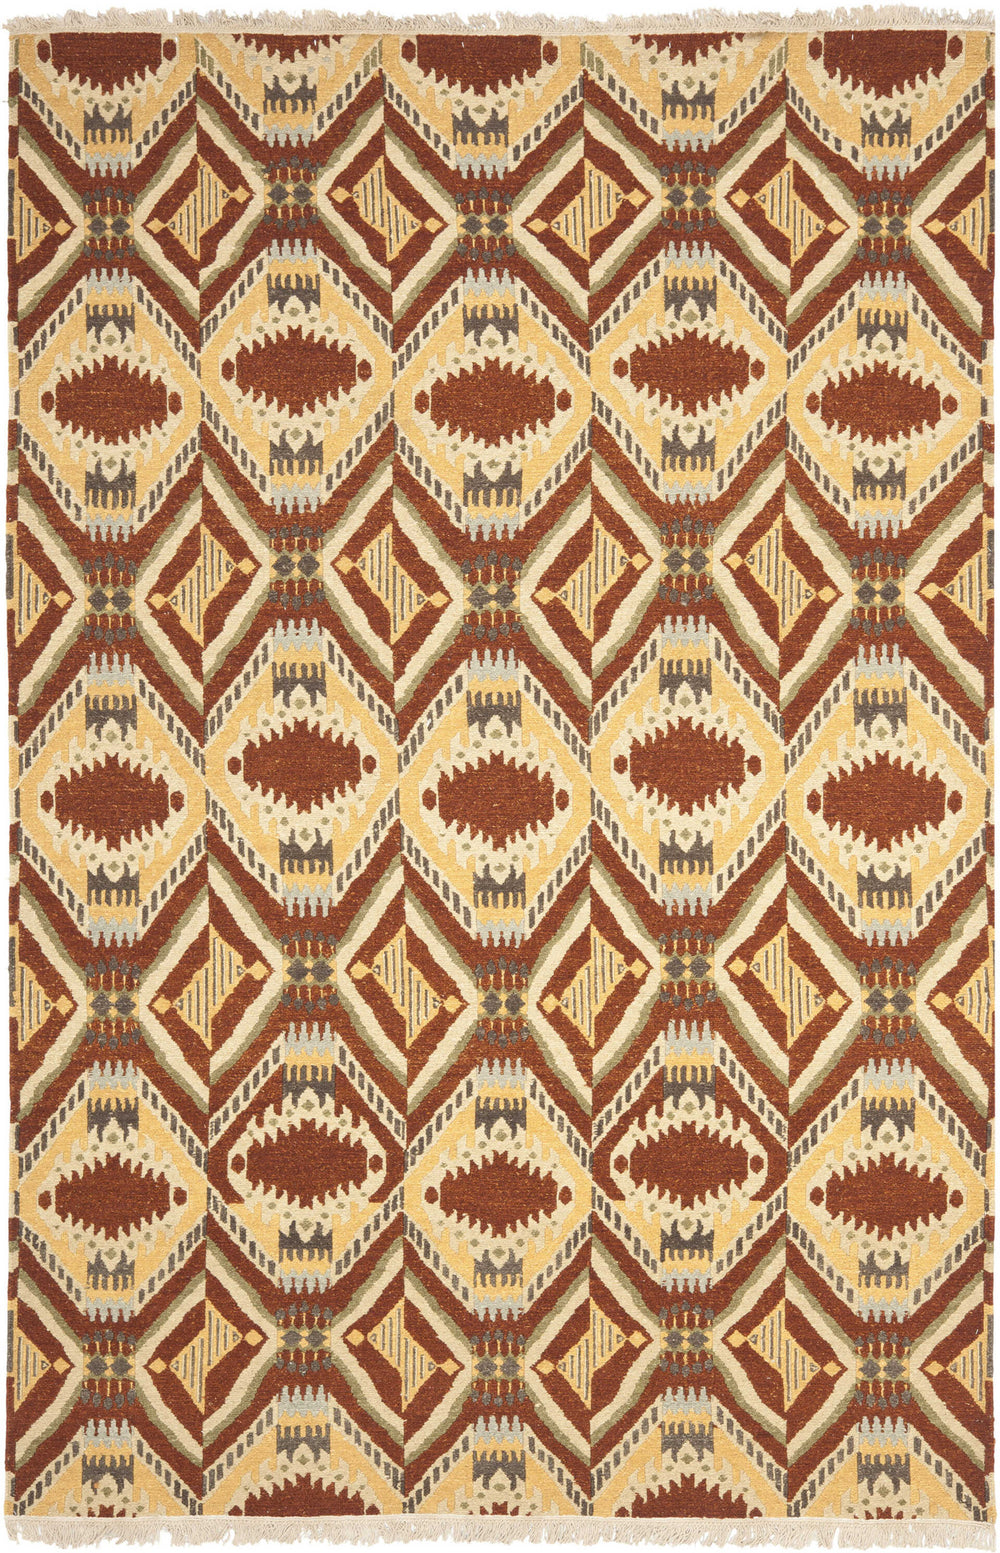 Safavieh David Easton DVE517 Area Rug